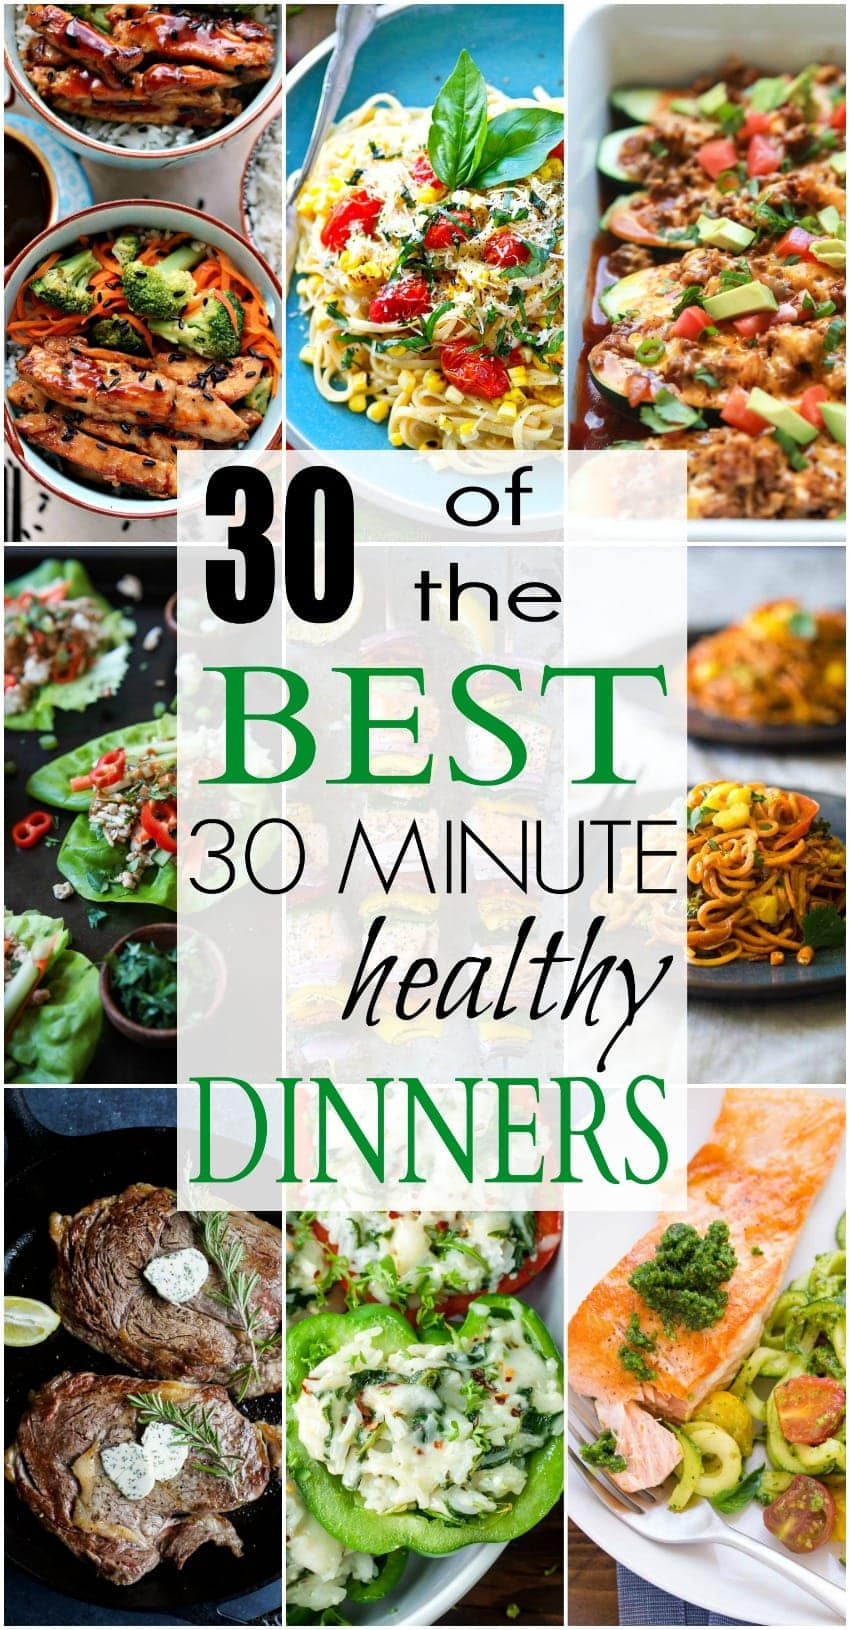 Healthy 30 Minute Meals  30 of The BEST Healthy 30 Minute Dinners